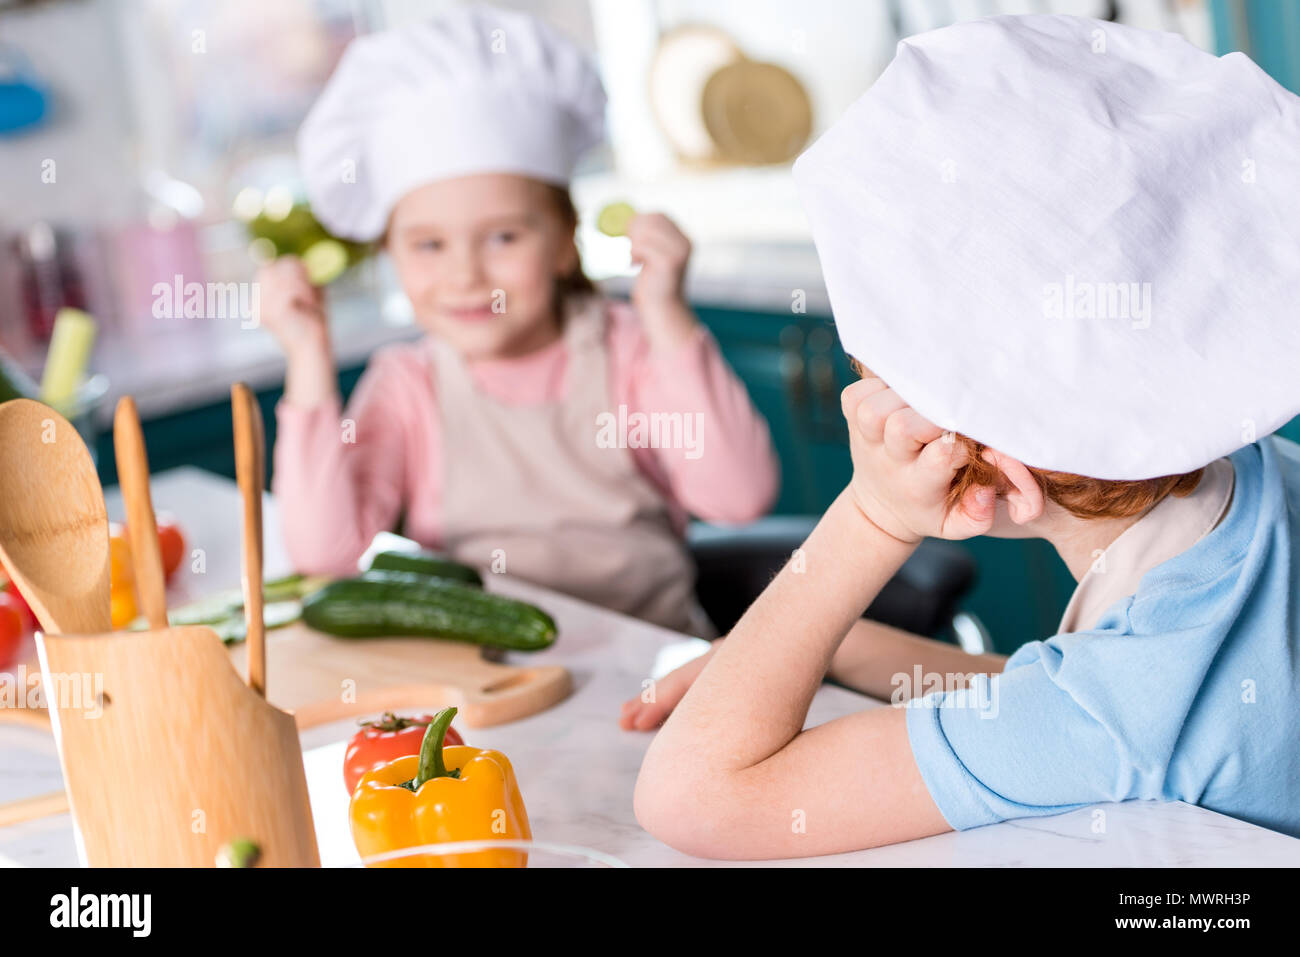 adorable children in chef hats looking at each other while cooking together in kitchen - Stock Image